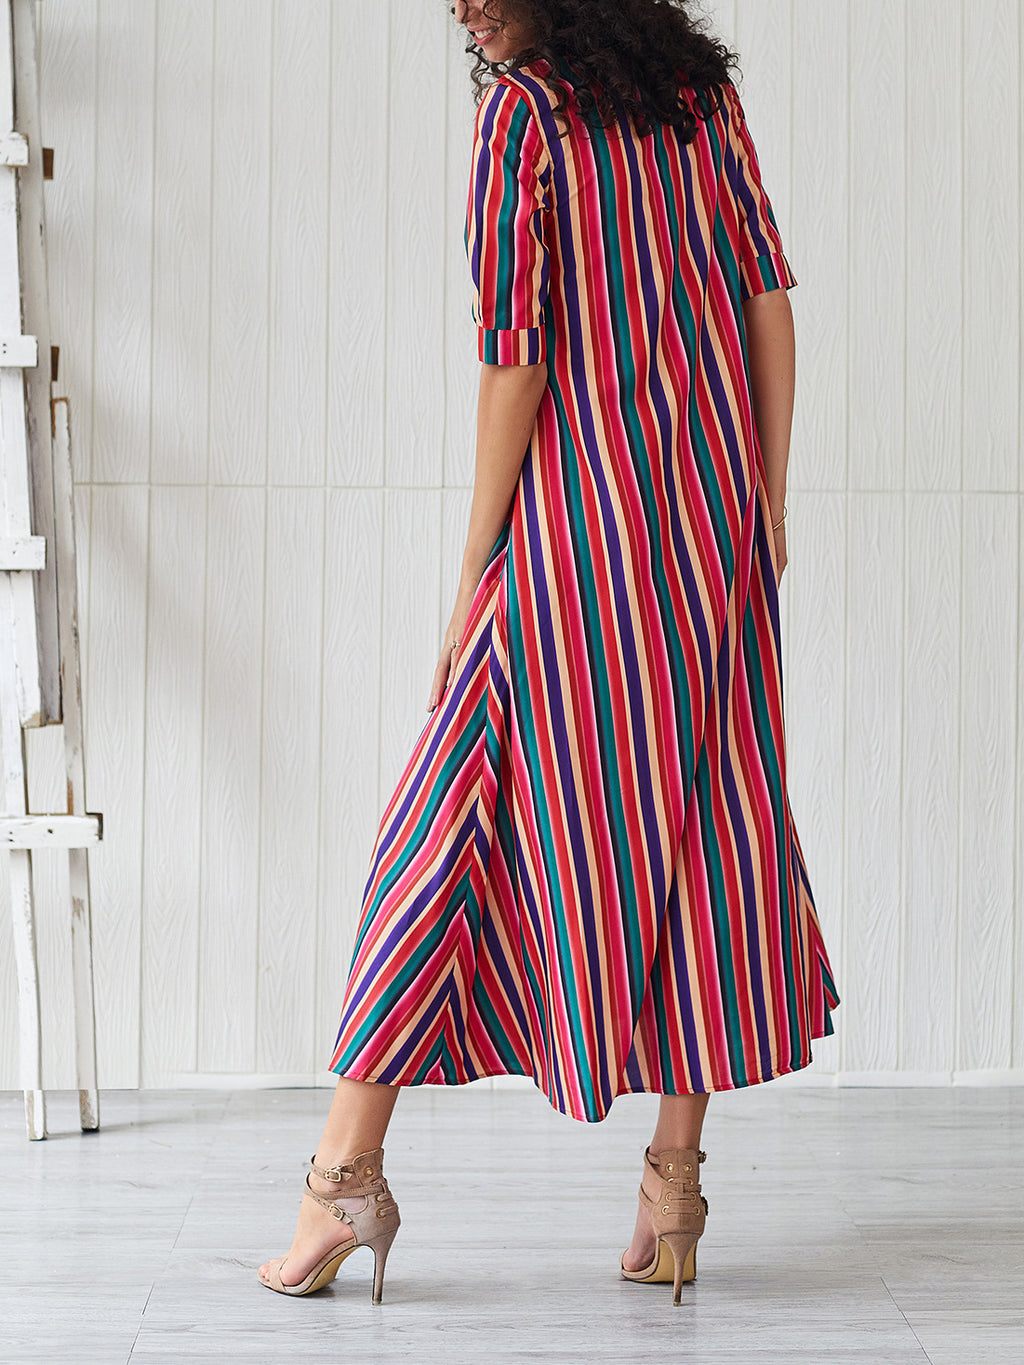 Half-sleeve Rainbow Striped Loose Bohemian Dress